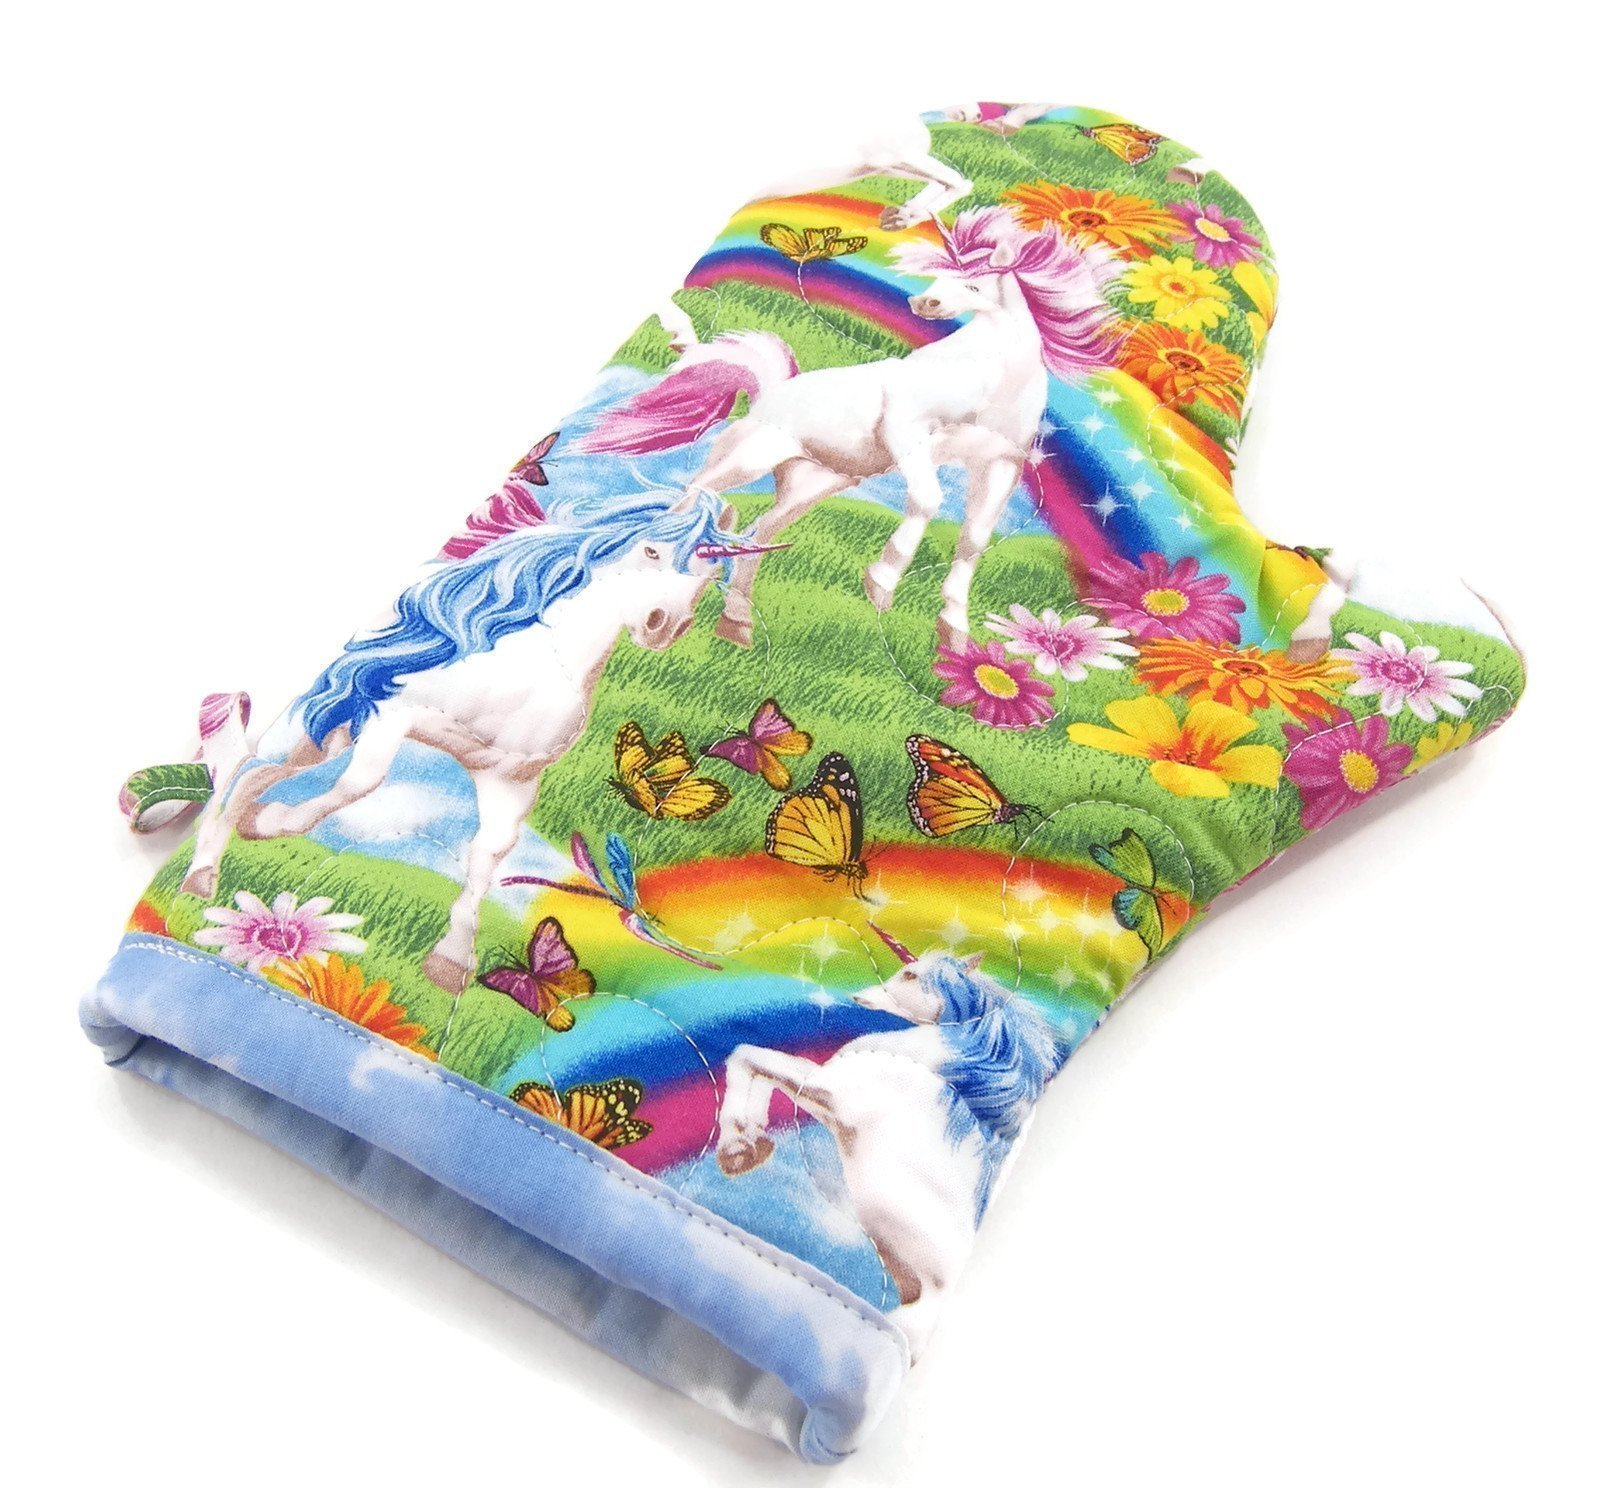 Unicorns and Rainbows Oven Mitt - Insulated Pot Holder - Cotton Fabric 8